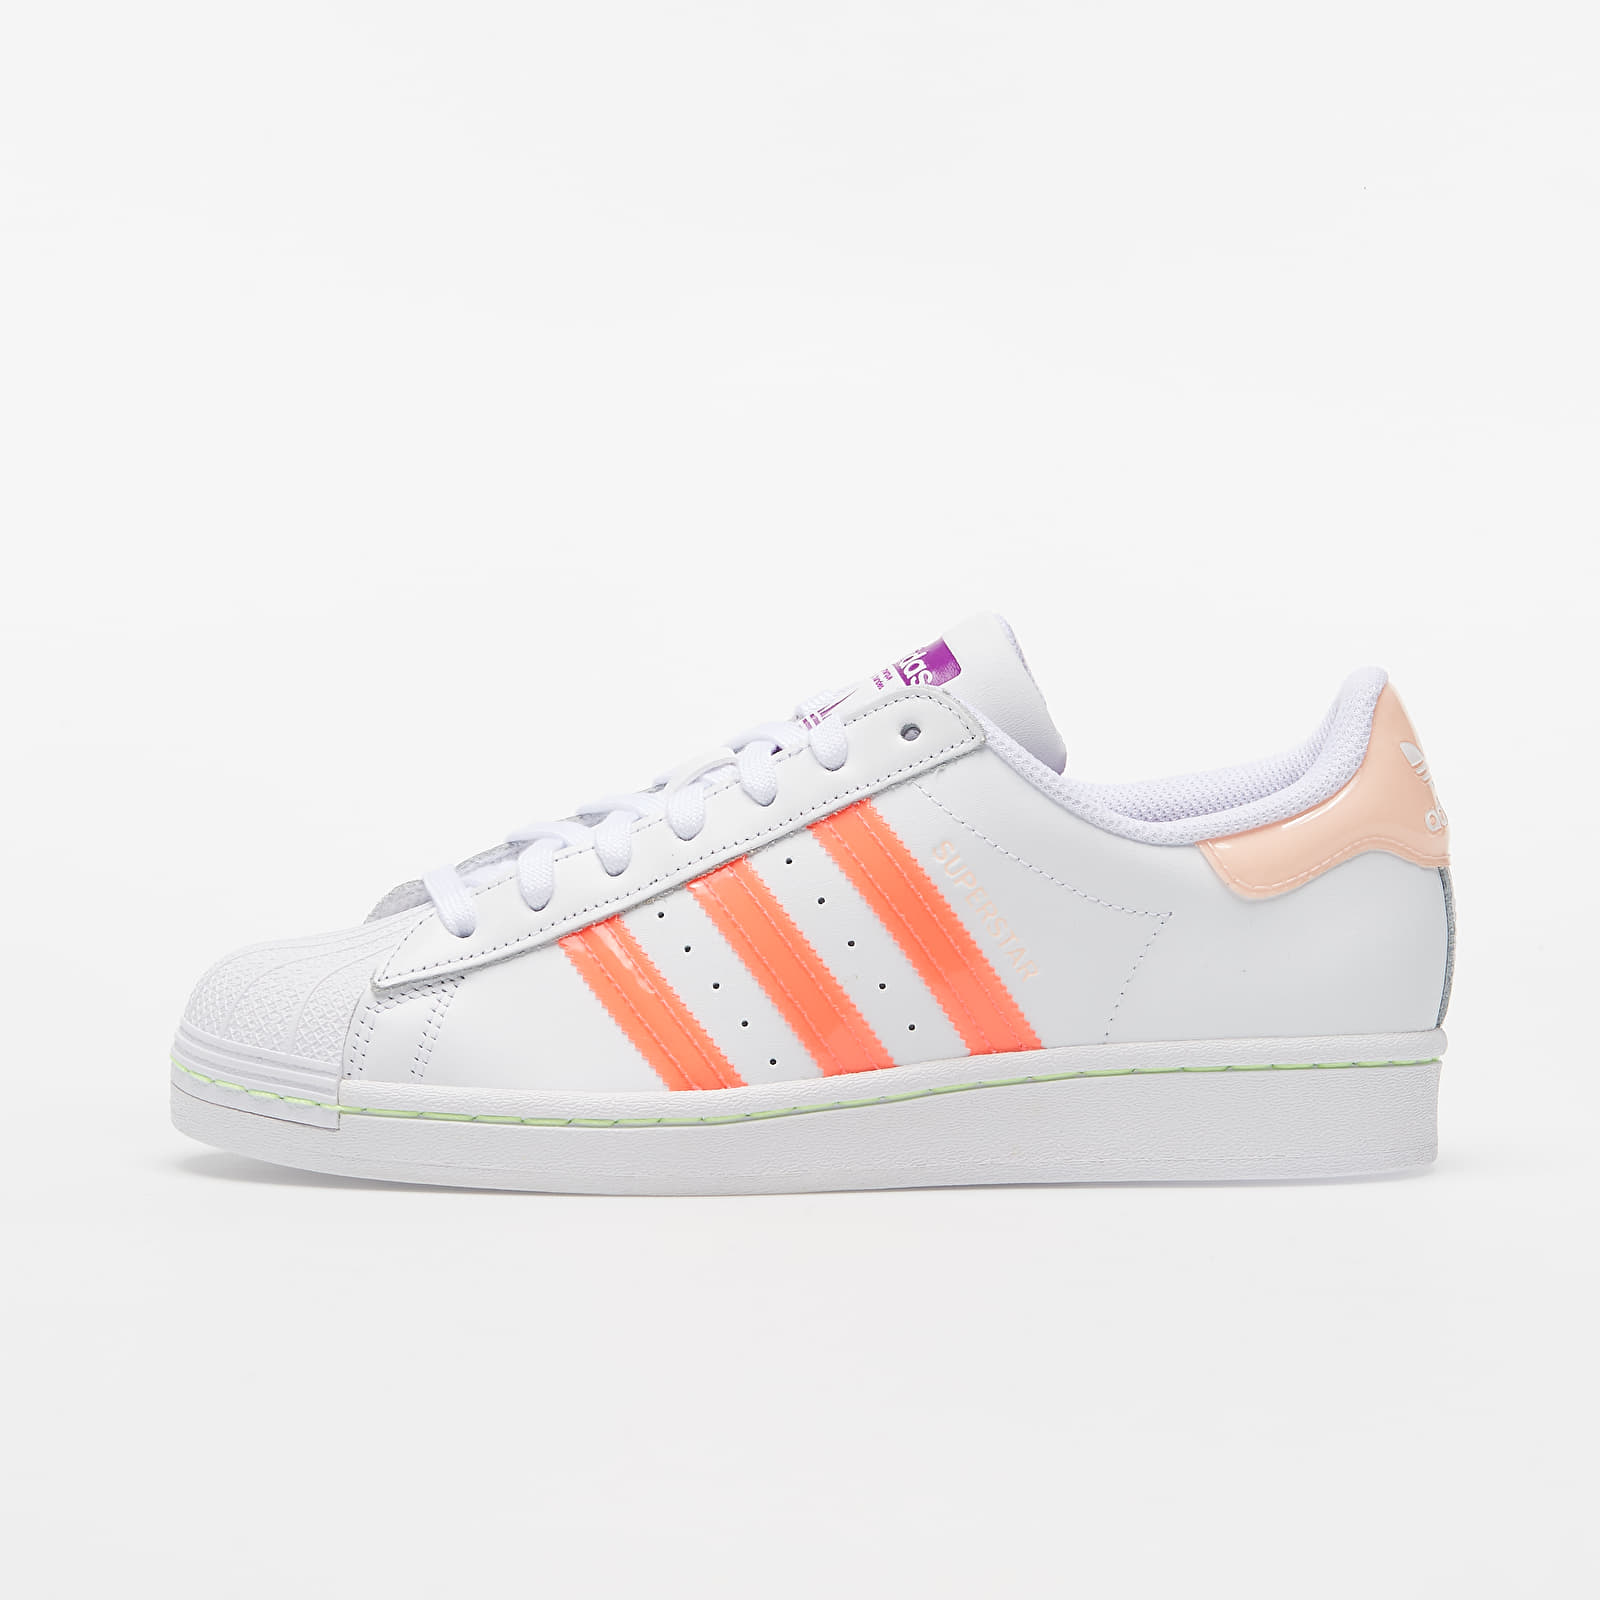 adidas Superstar W Ftw White/ Signature Pink/ Shock Purple EUR 38